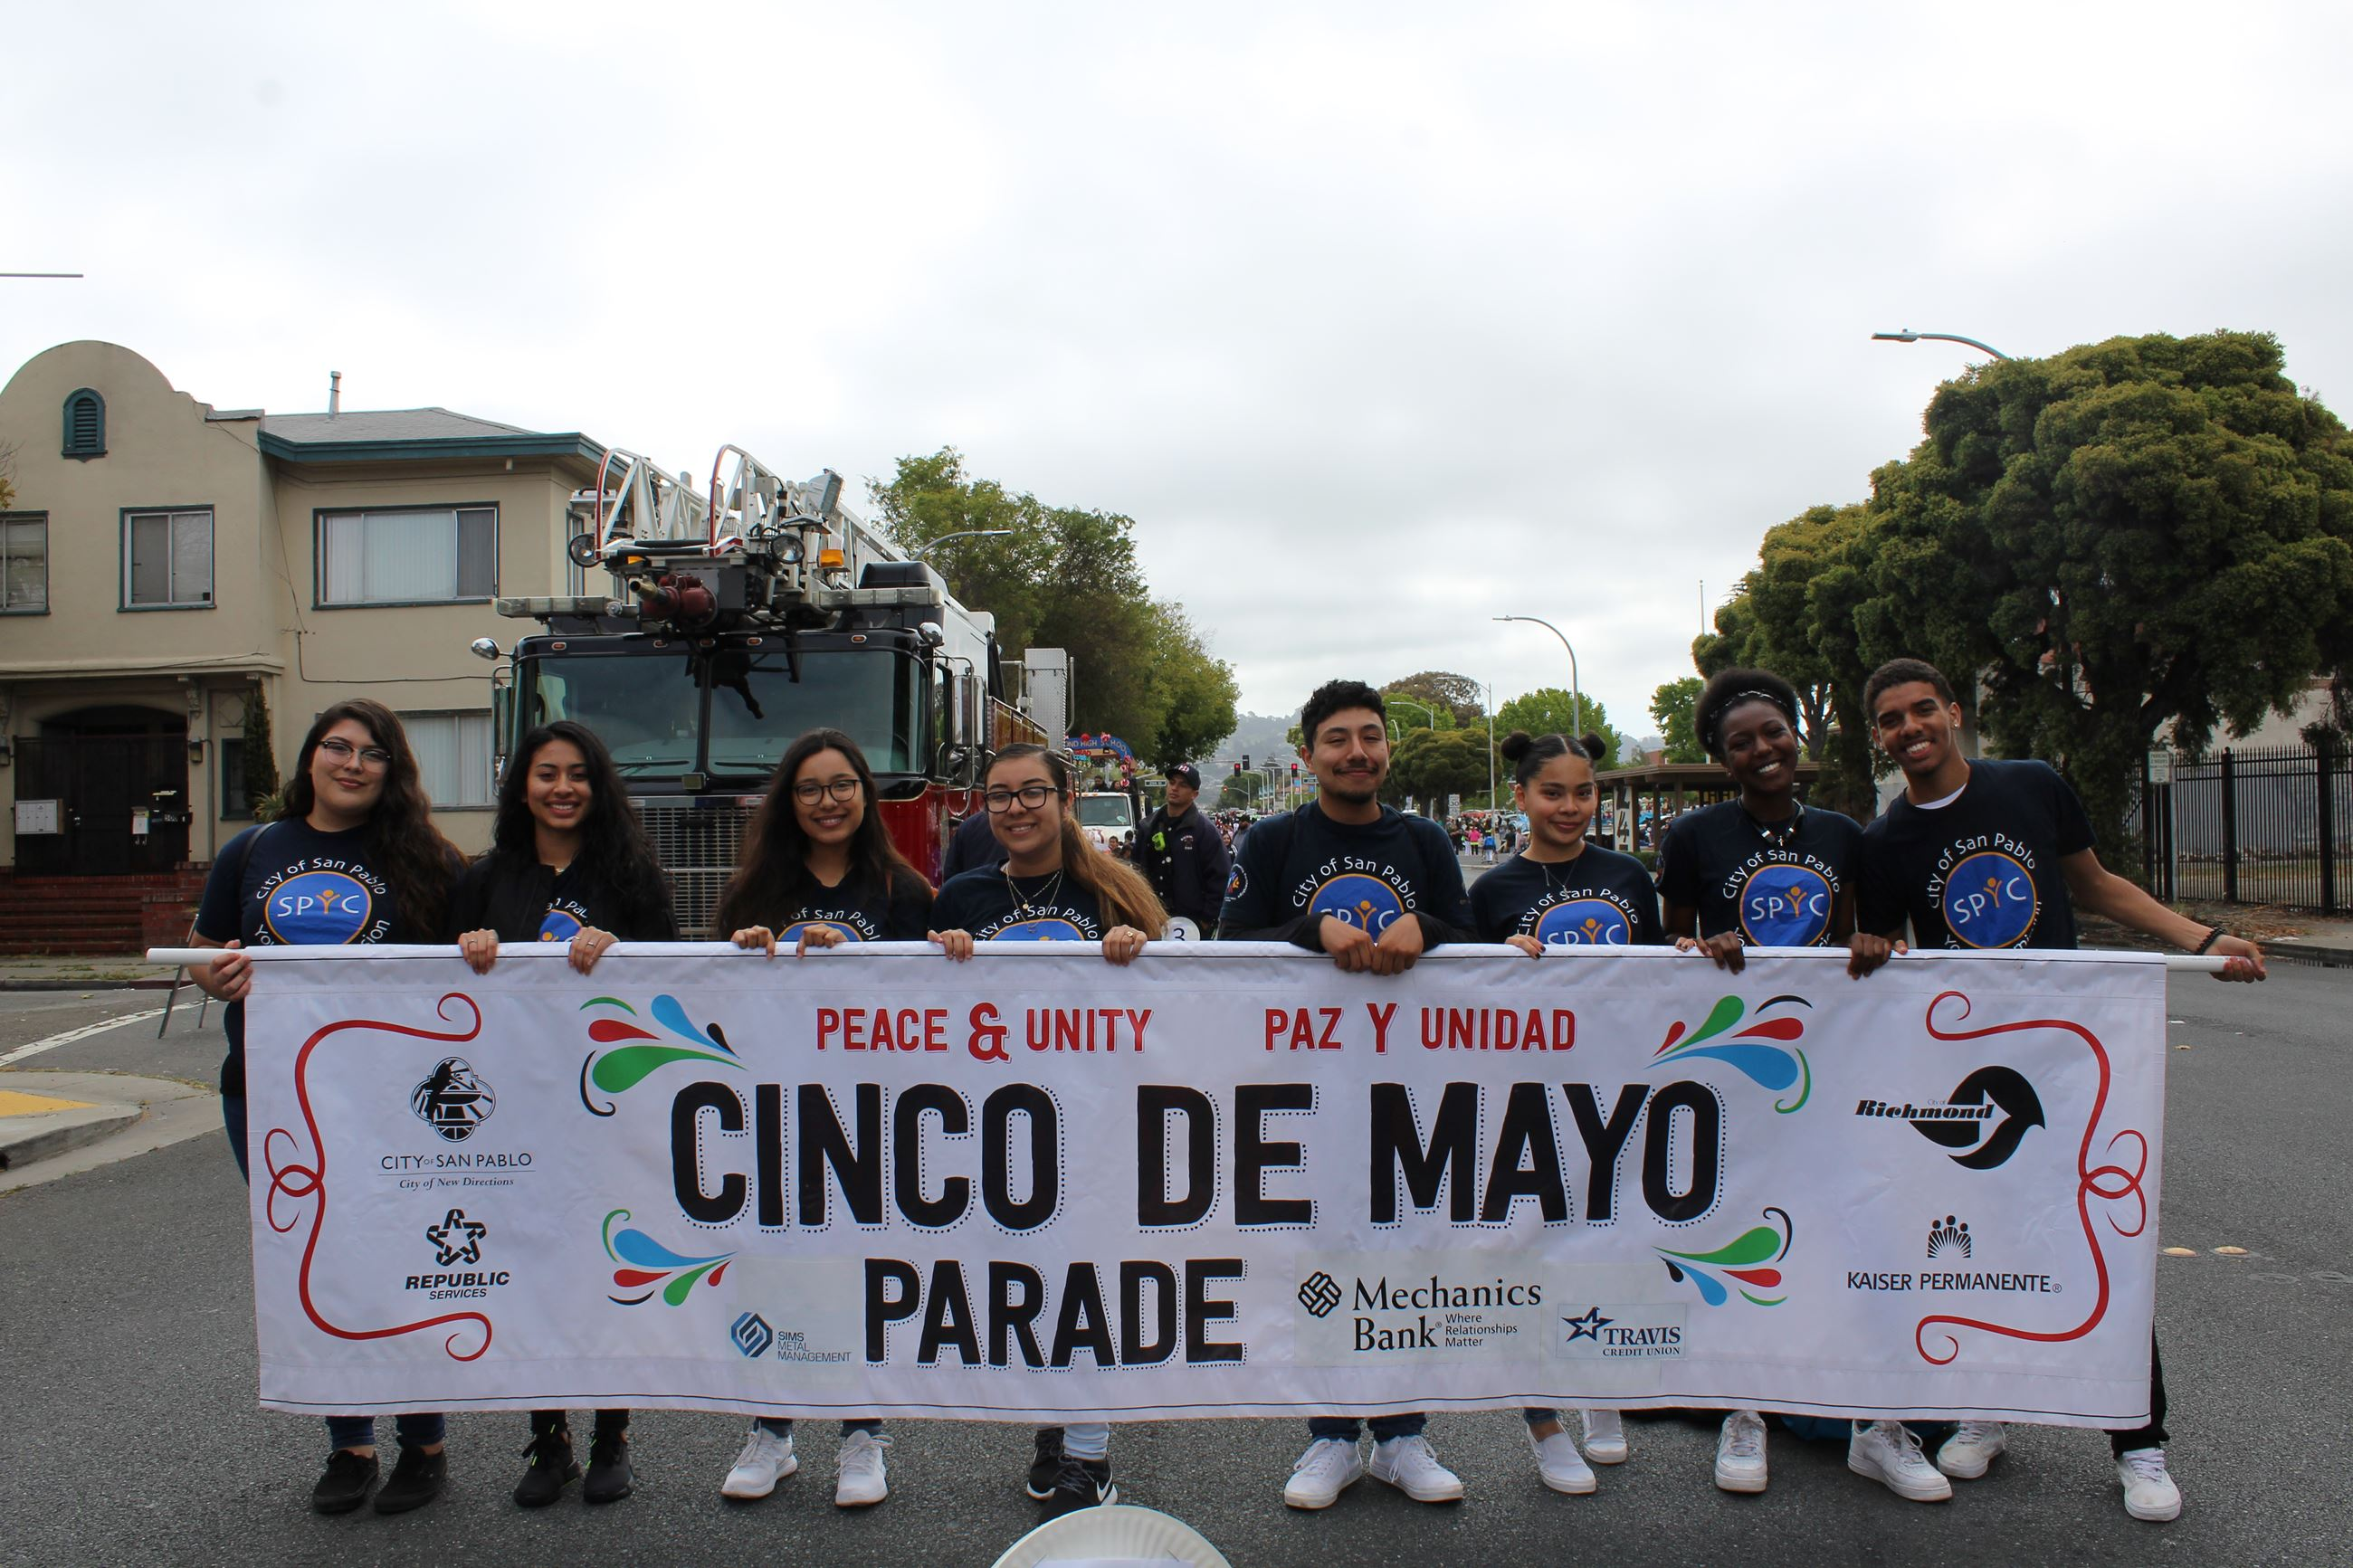 San Pablo Youth Commissioners Holding Peace and Unity Parade Banner During Parade